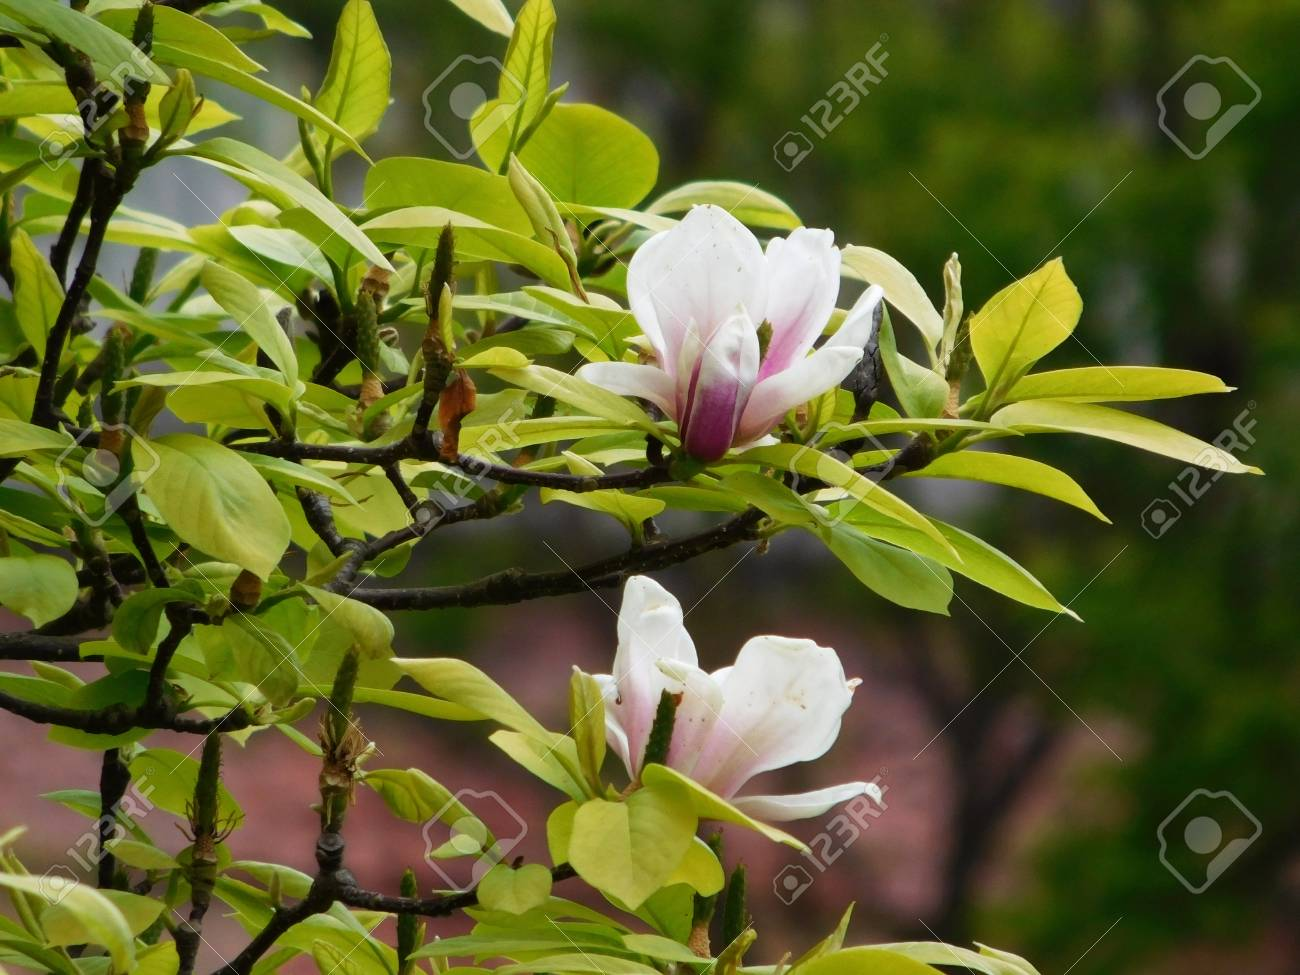 White Magnolia Flowers On Branches Stock Photo Picture And Royalty